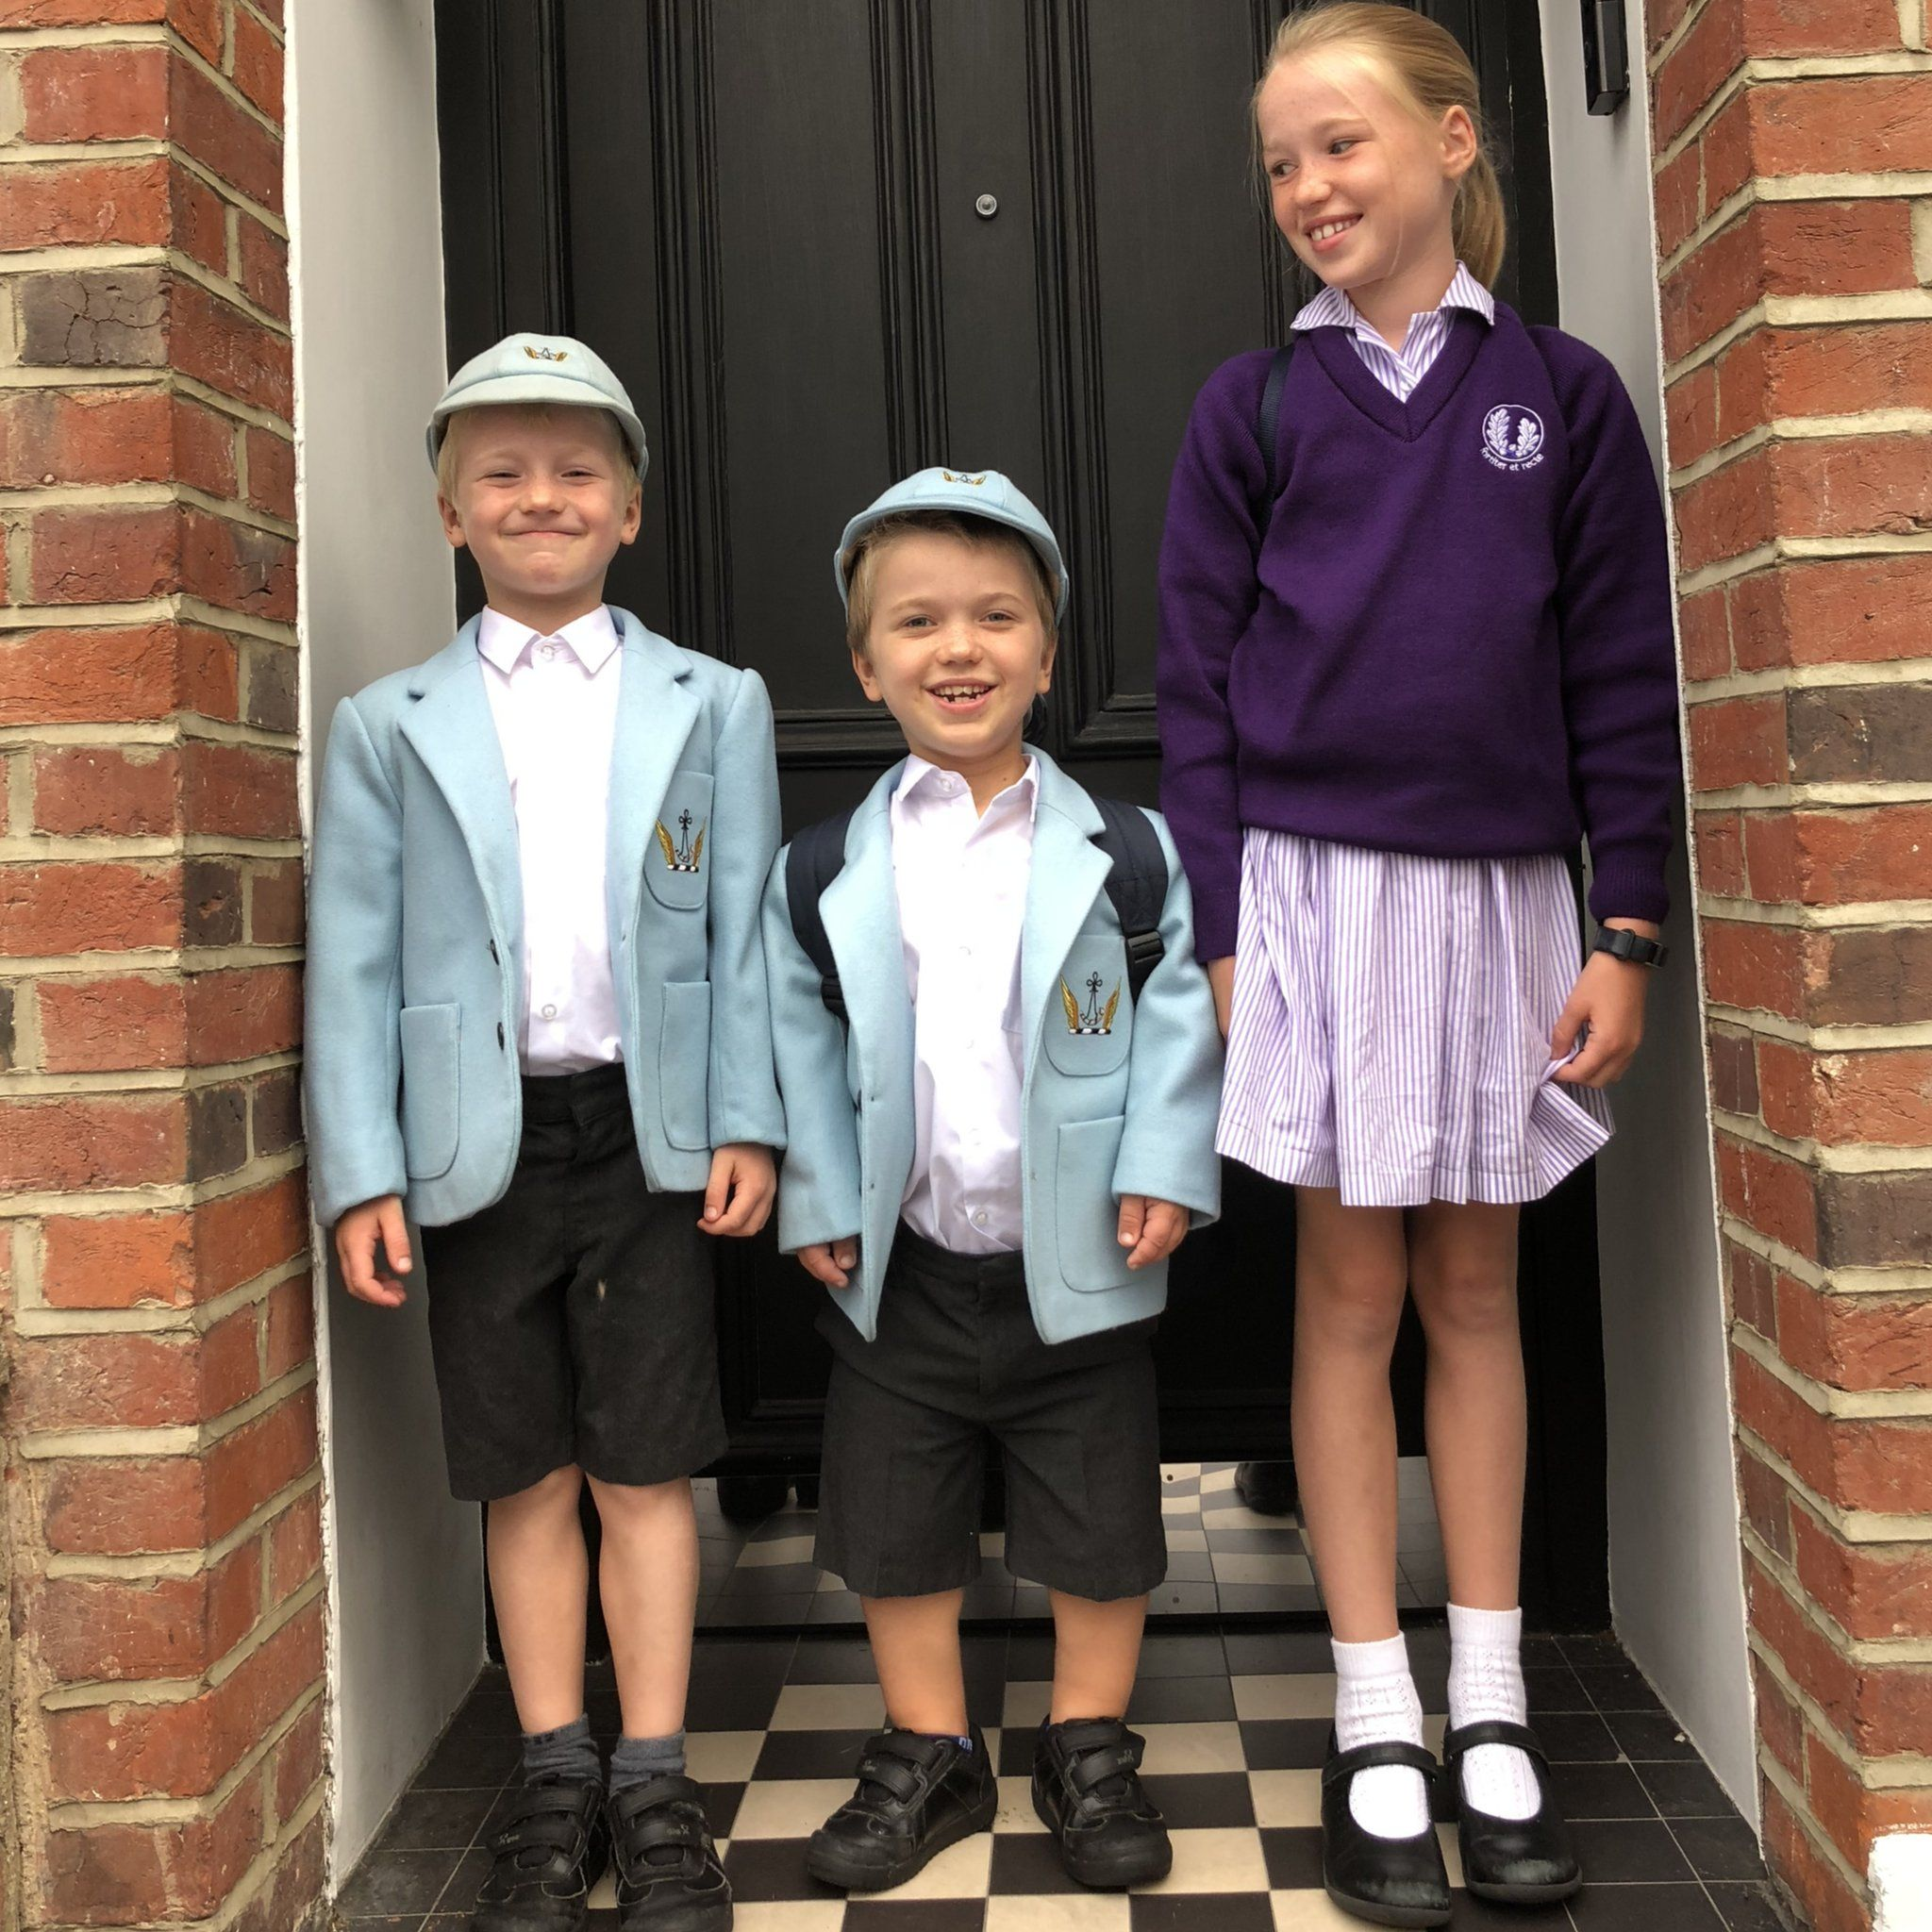 Sam with his brother and sister